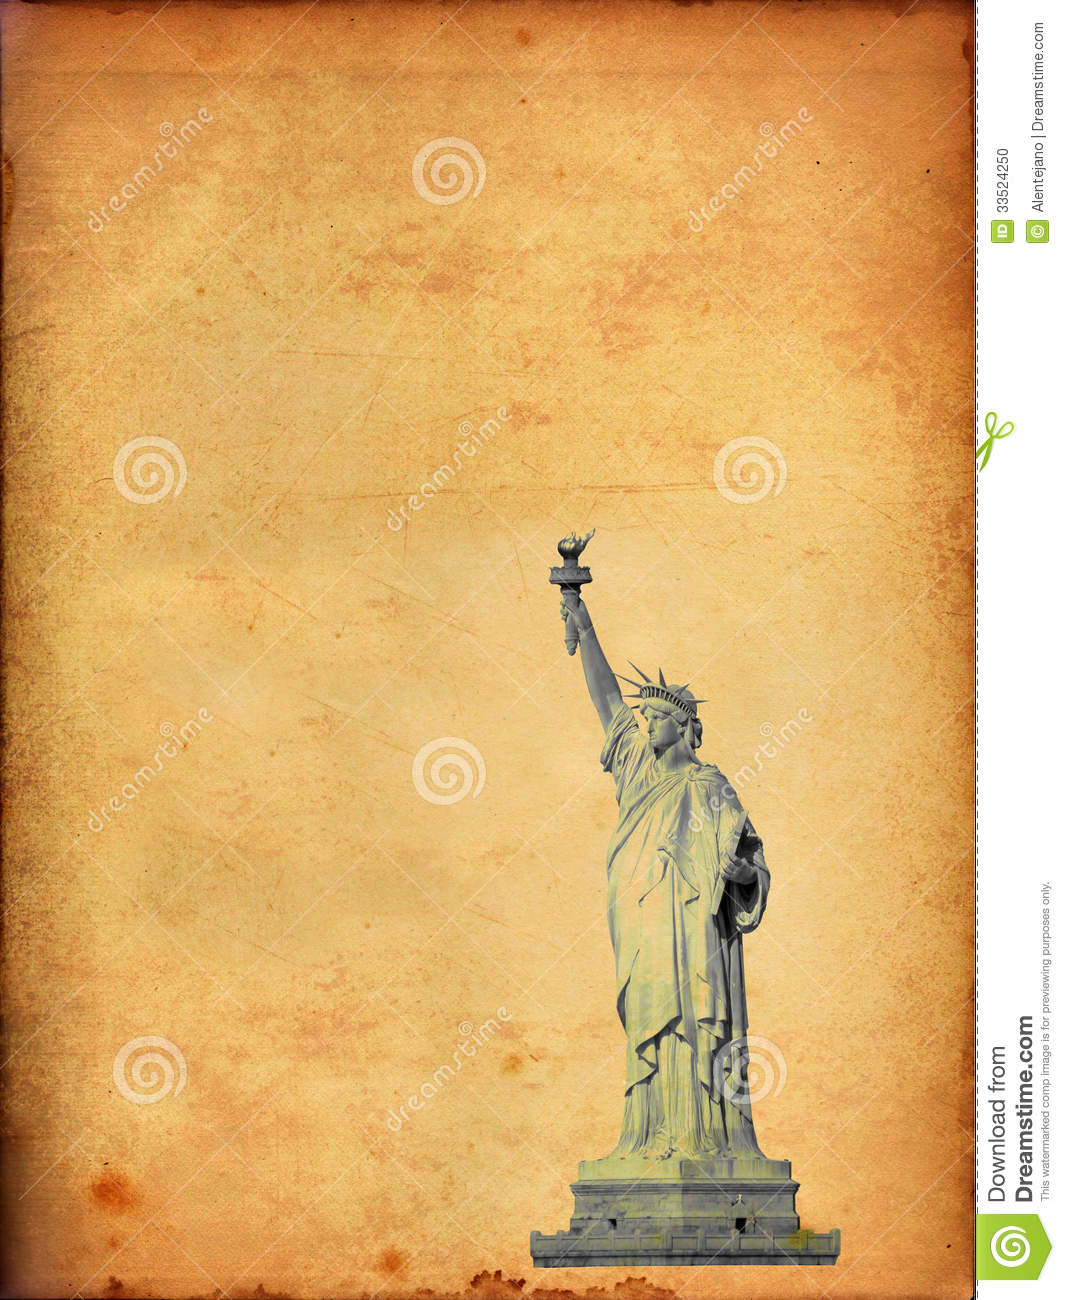 narrative essay lady liberty Will women be turned away from the un commission on the status of women, to be held in march, in new york the world's global institutions must fight the ' muslim ban', starting with the united nations crowds protest trump's muslim travel ban across us airports image: miami herald/tns/abaca.